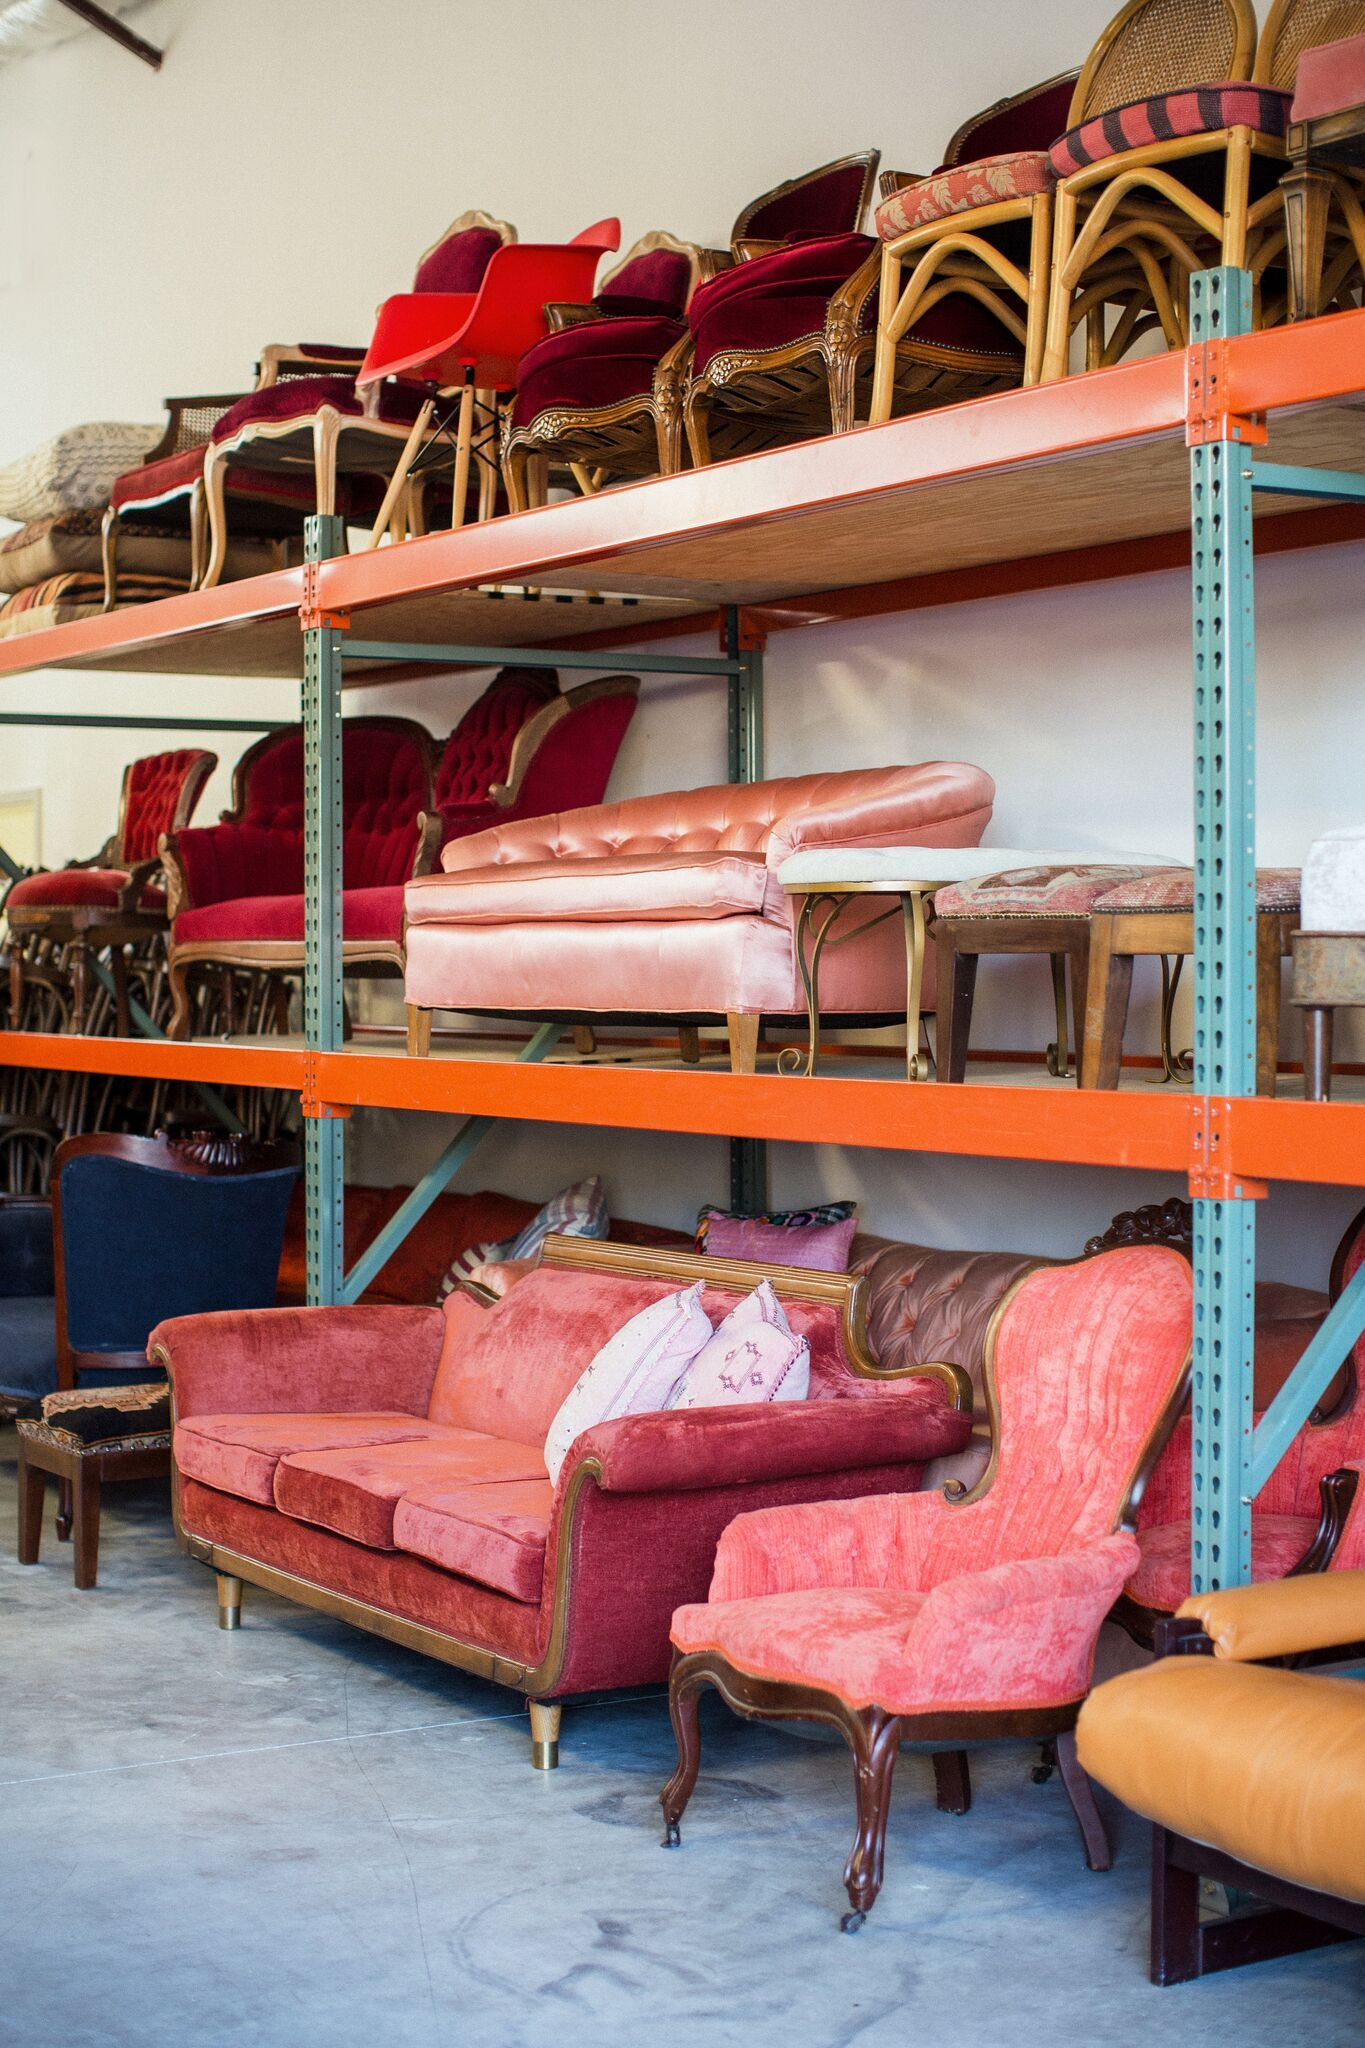 Wedding and event rental companys warehouse with colorful vintage furniture in austin texas via birch brass vintage rentals